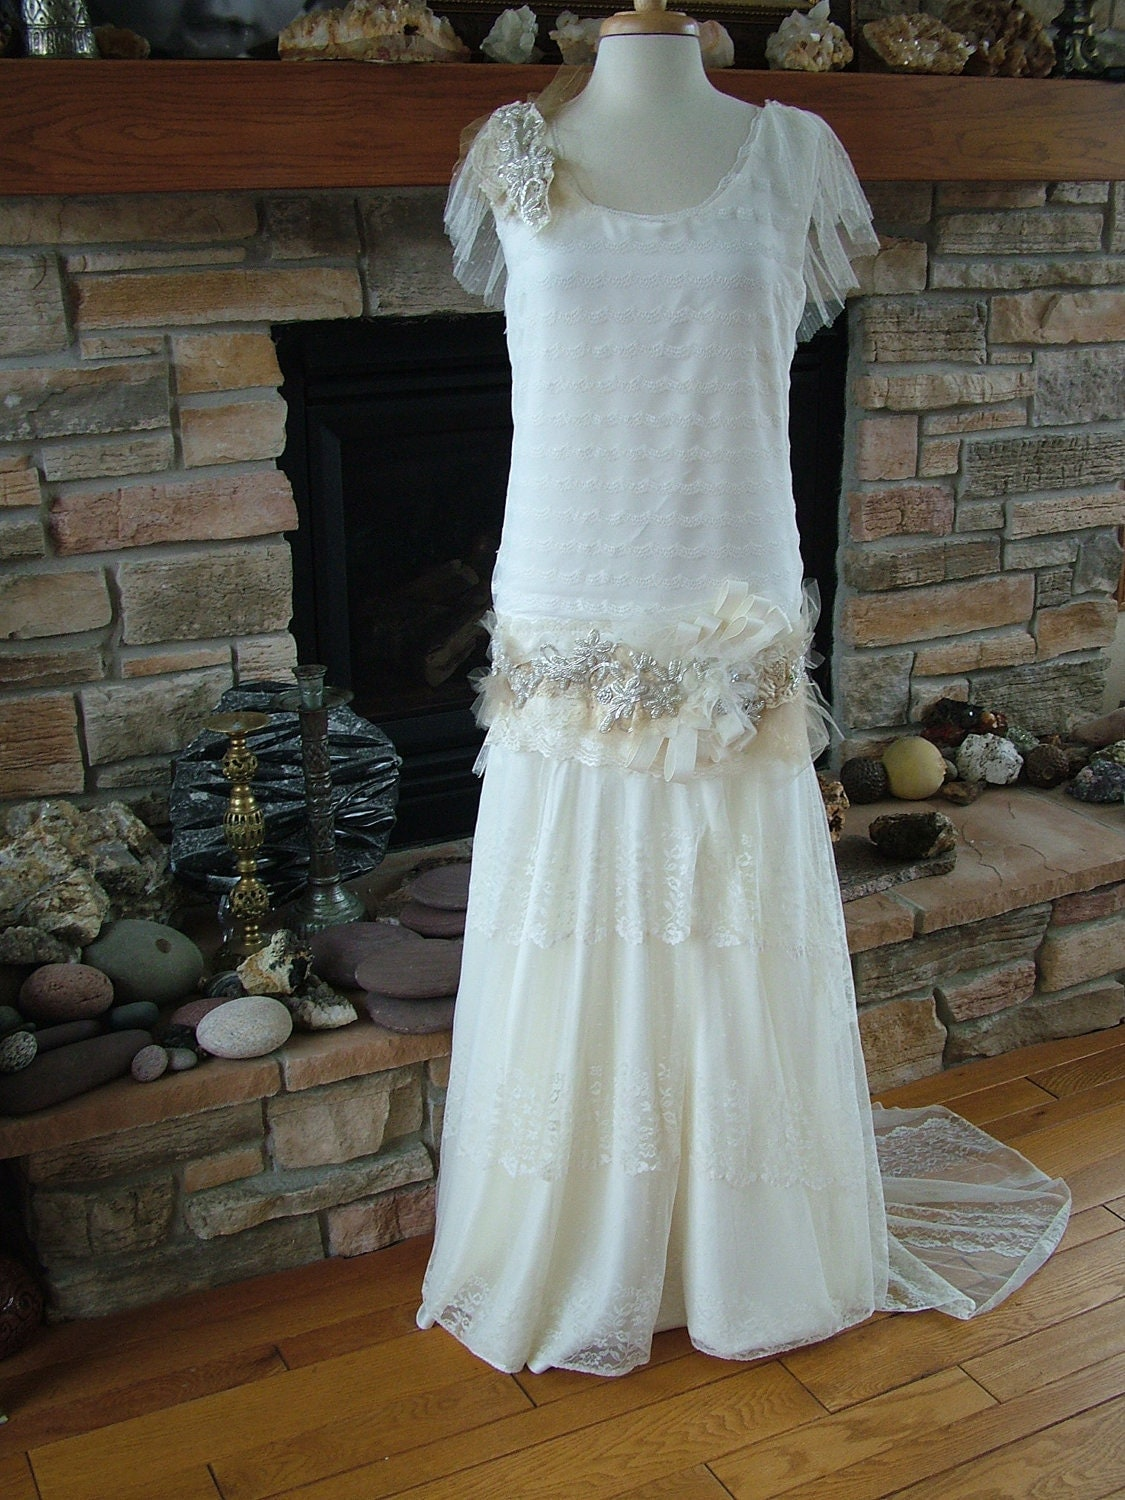 301 moved permanently for 1920s inspired wedding dresses